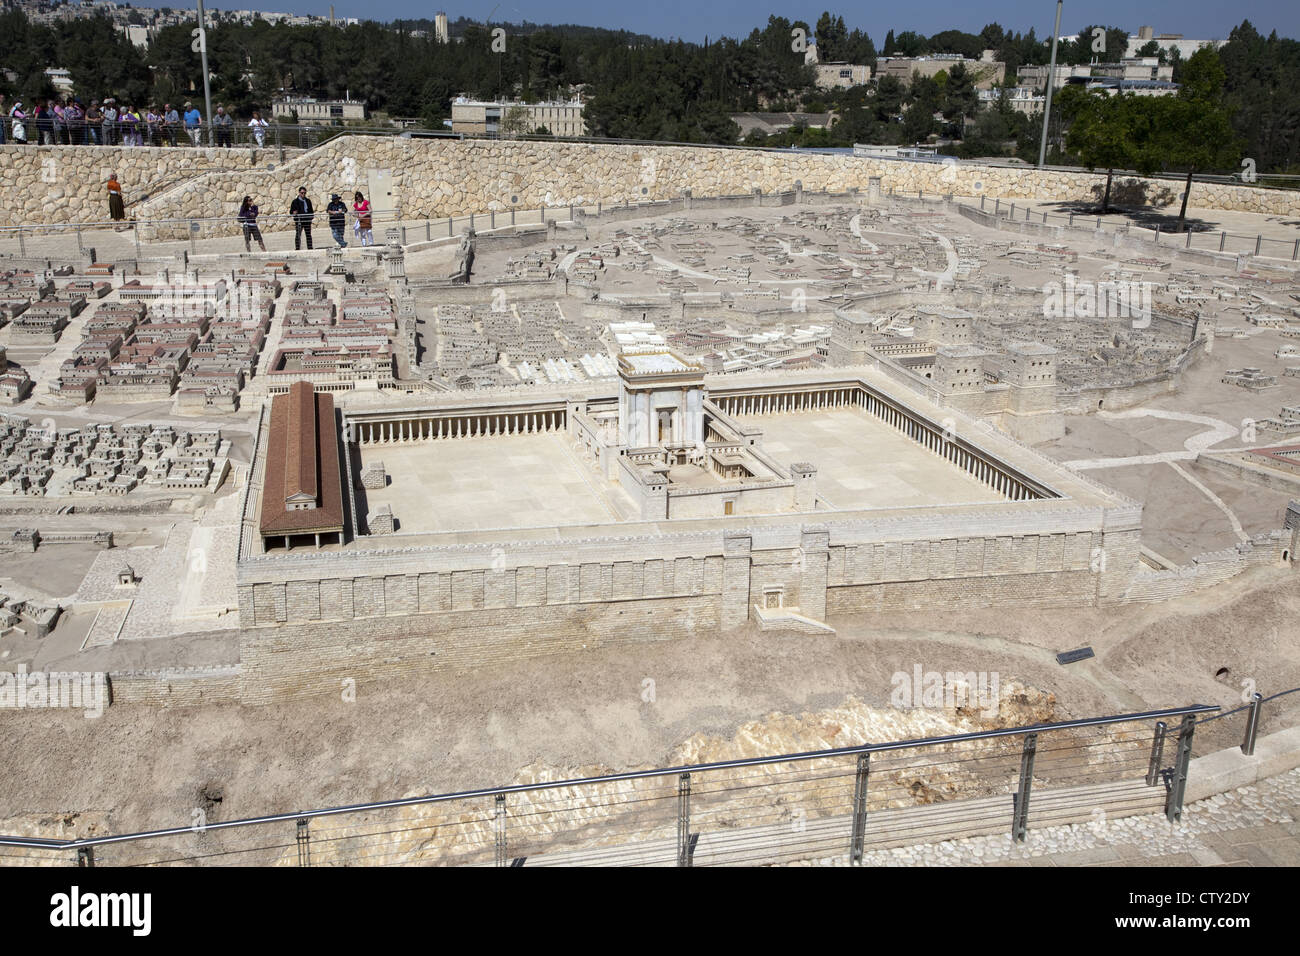 50:1 scale Second Temple Model at the Israel Museum in Jerusalem, Israel - Stock Image